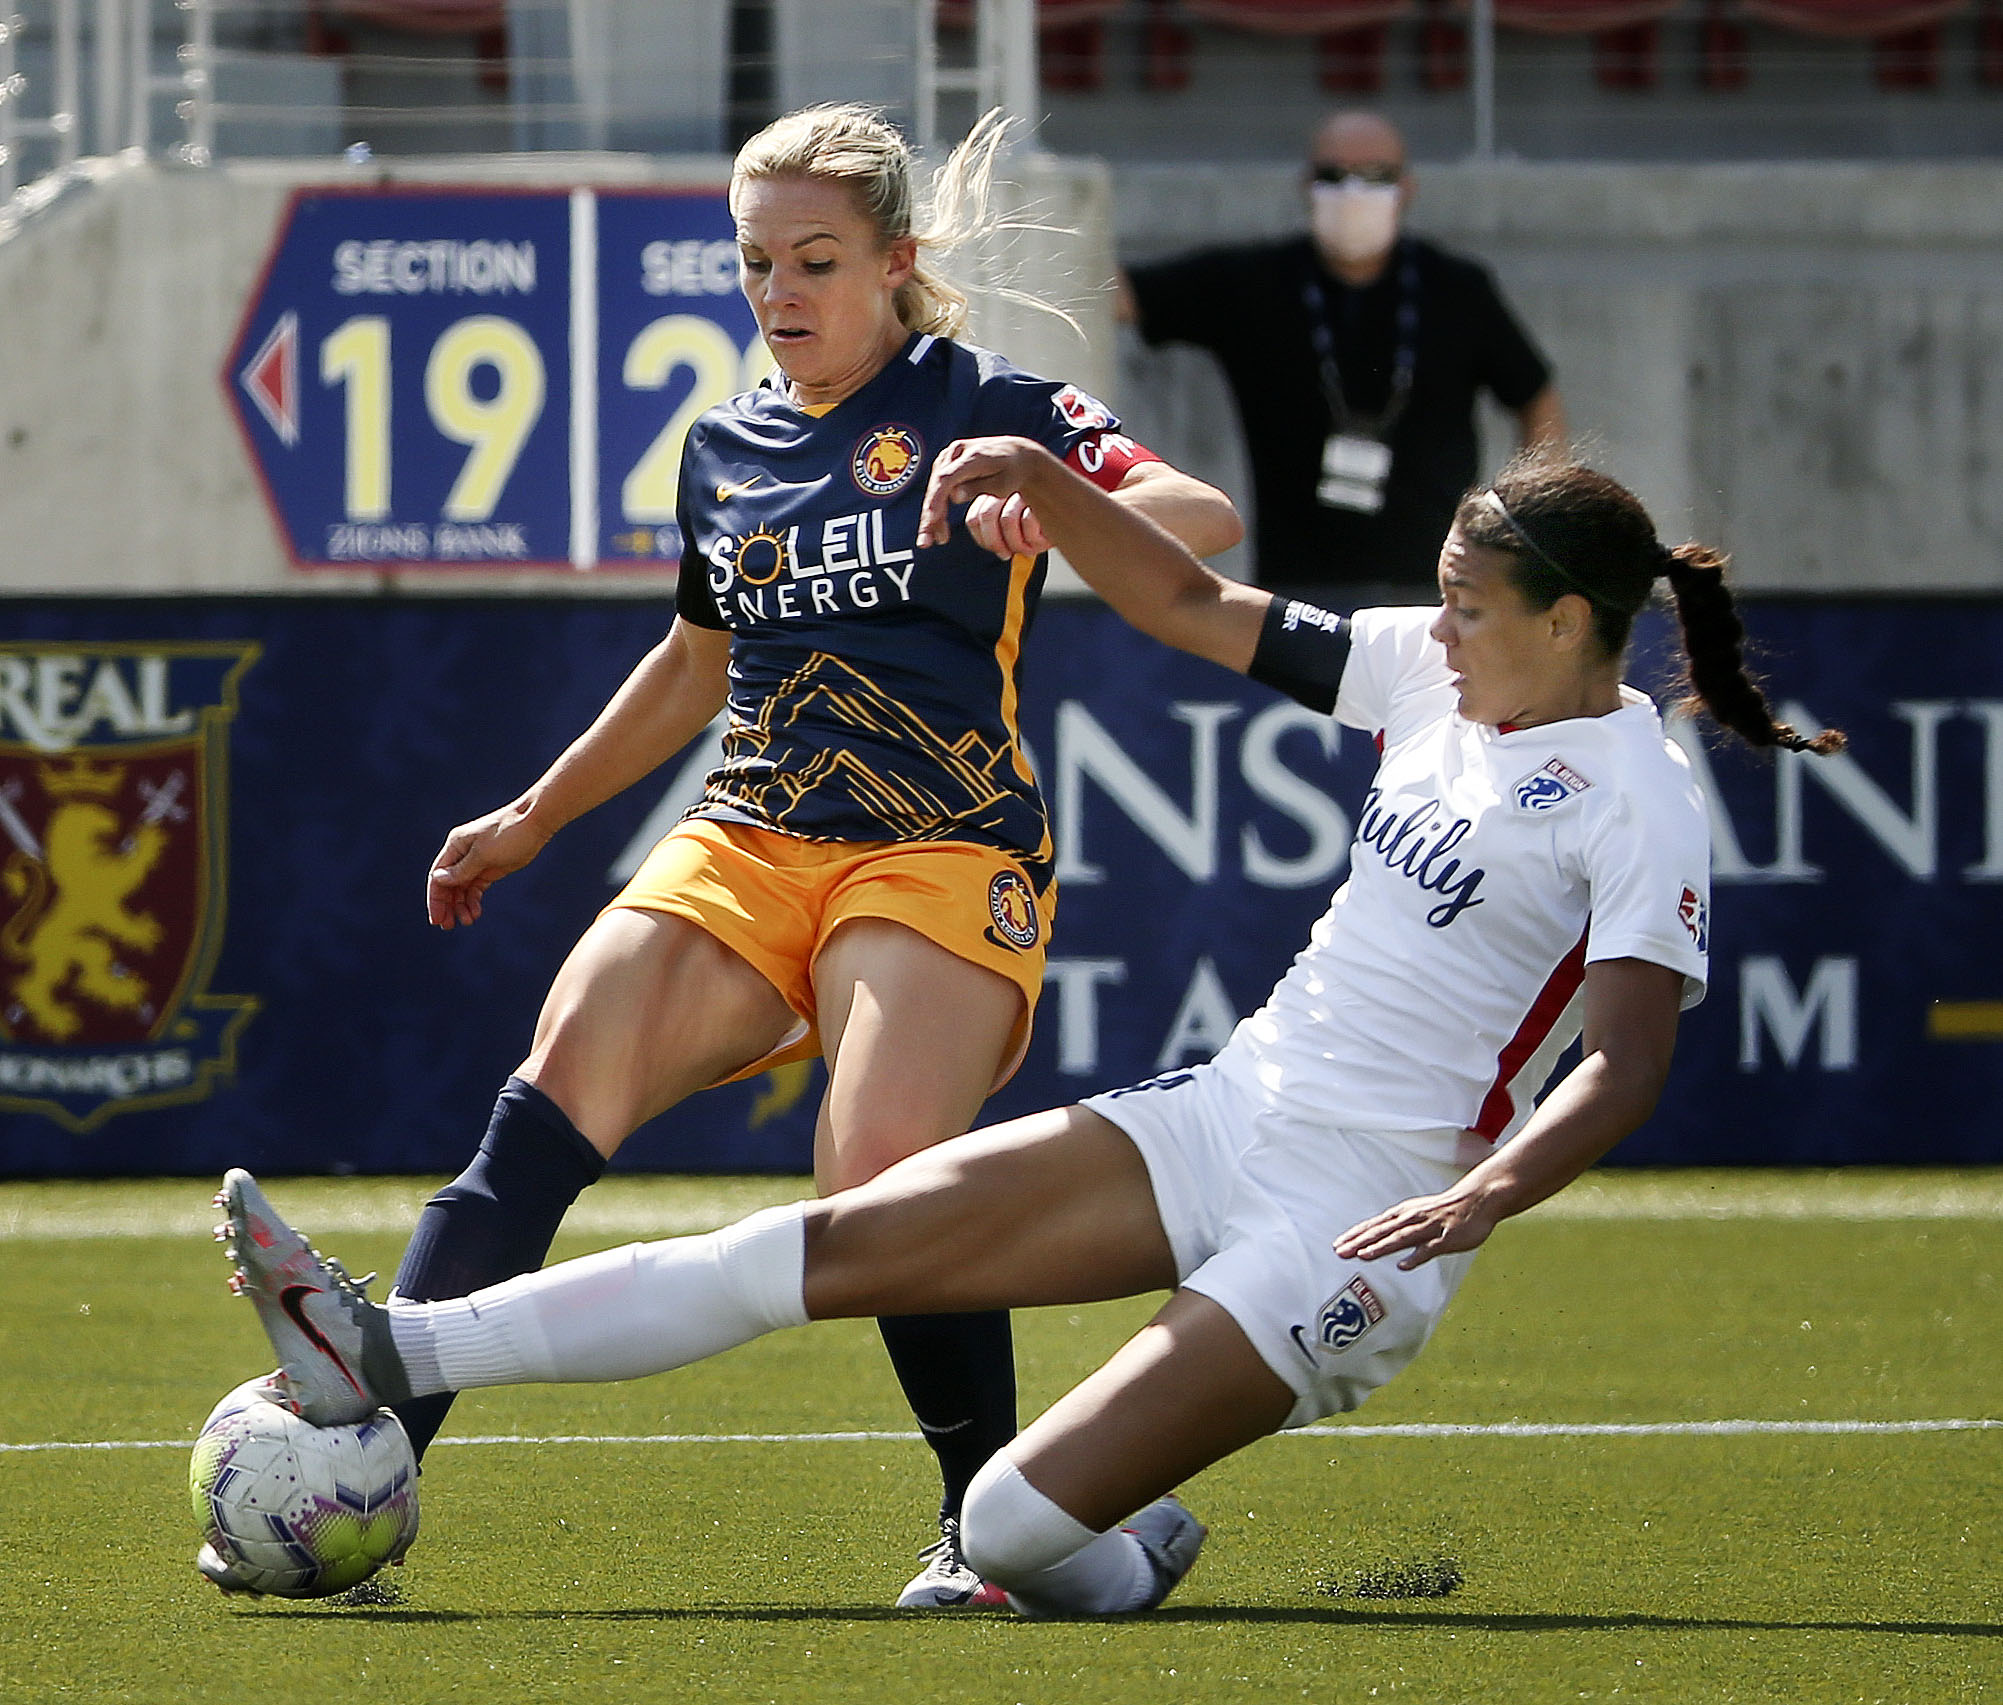 Utah Royals player Amy Rodriguez is stopped by OL Reign defender Alana Cook in a 2020 NWSL Challenge Cup game at Zions Bank Stadium in Herriman on Wednesday, July 8, 2020.